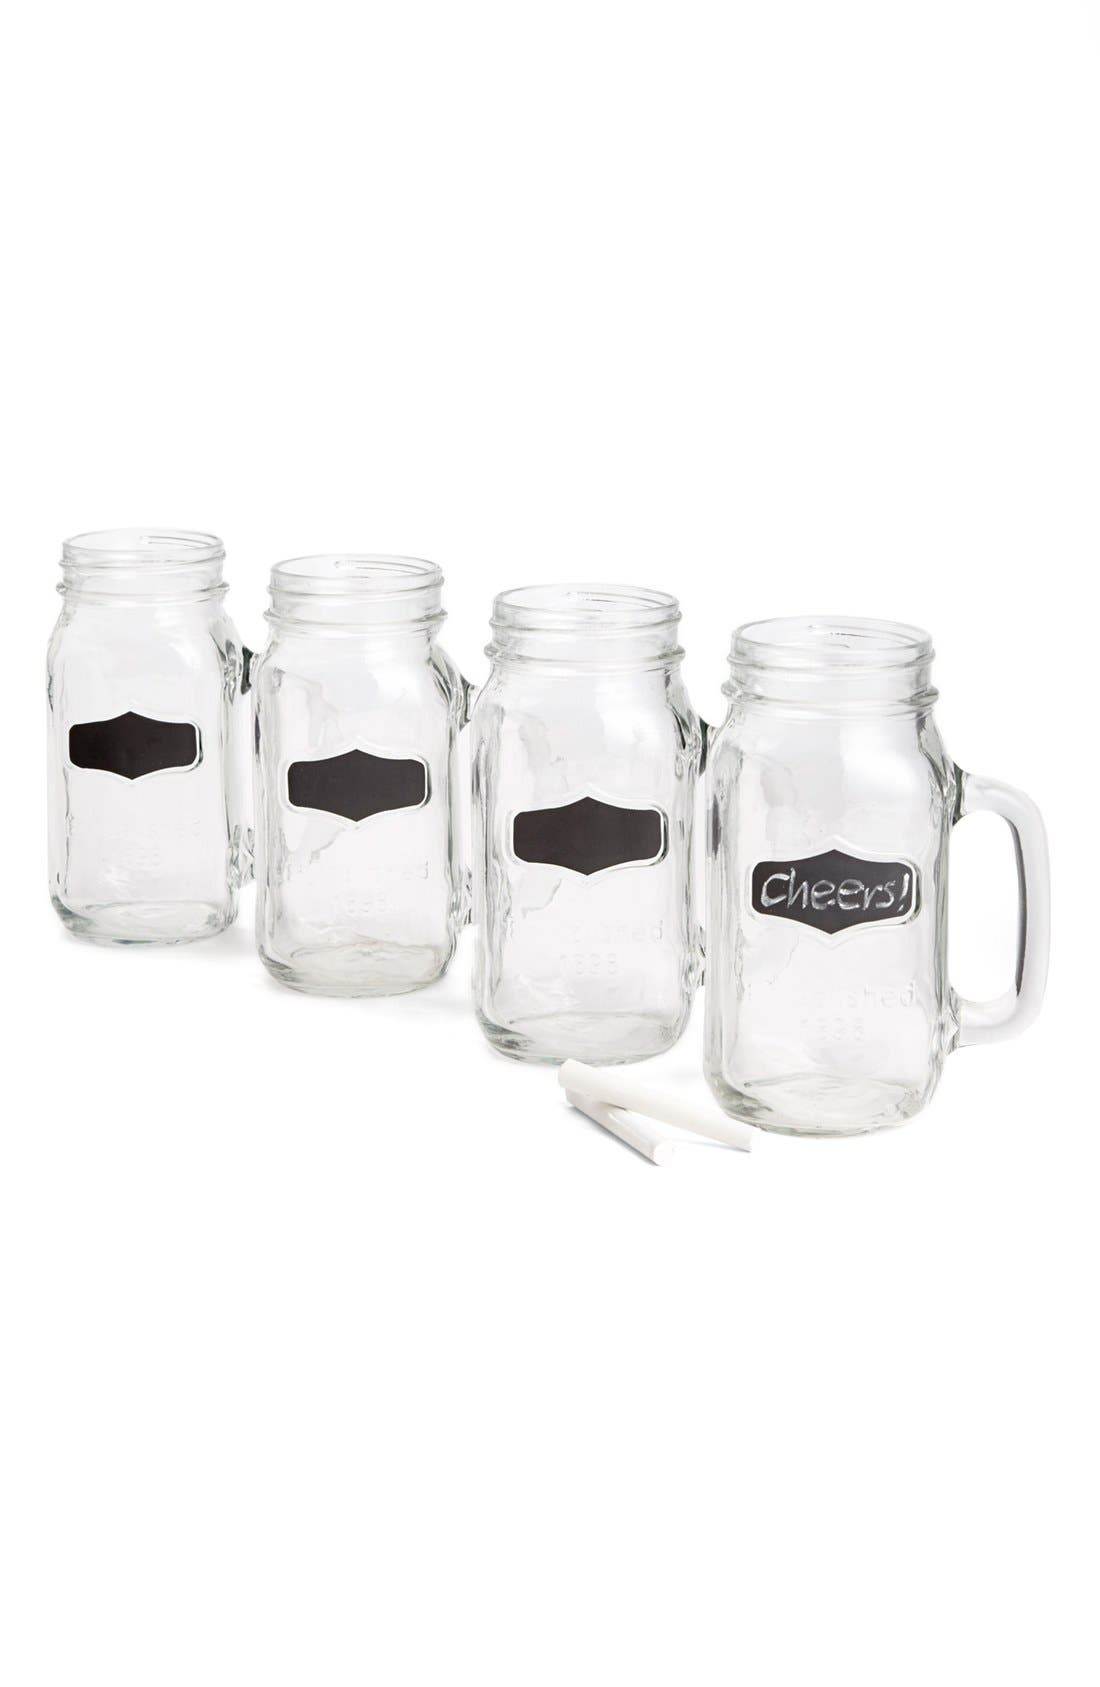 Main Image - Circle Glass 'Yorkshire' Mason Jar Mugs (Set of 4)